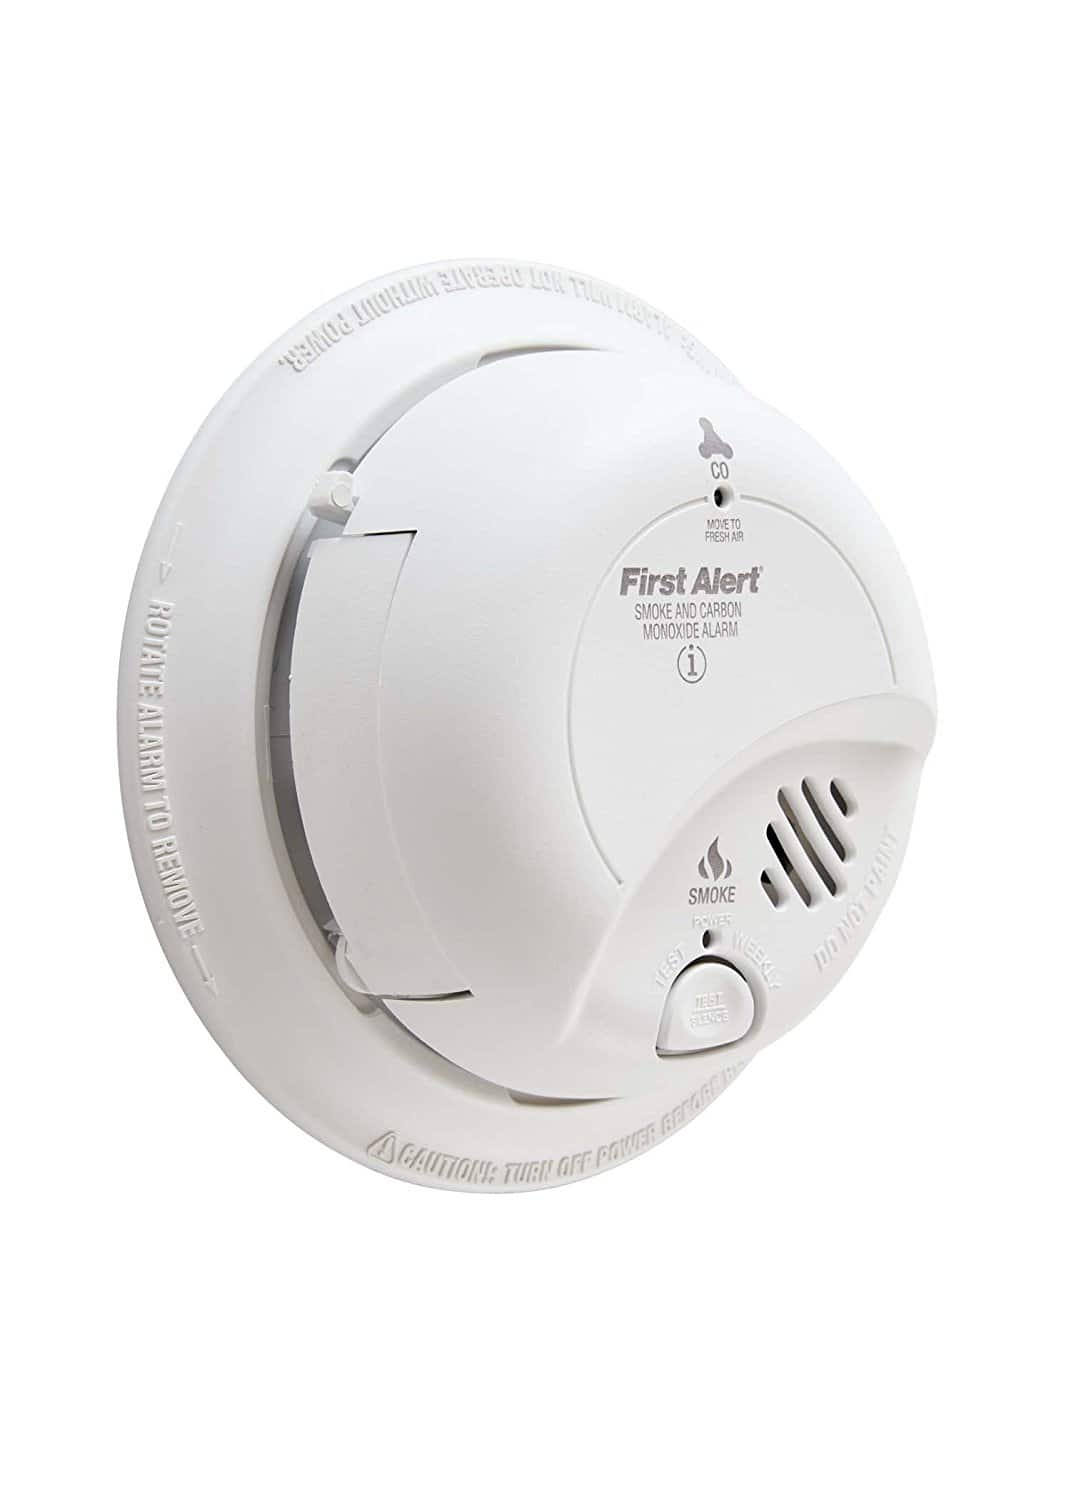 $29.99  First Alert SC9120B Hardwire Combination Smoke/Carbon Monoxide Alarm with Battery Backup [1 Pack]